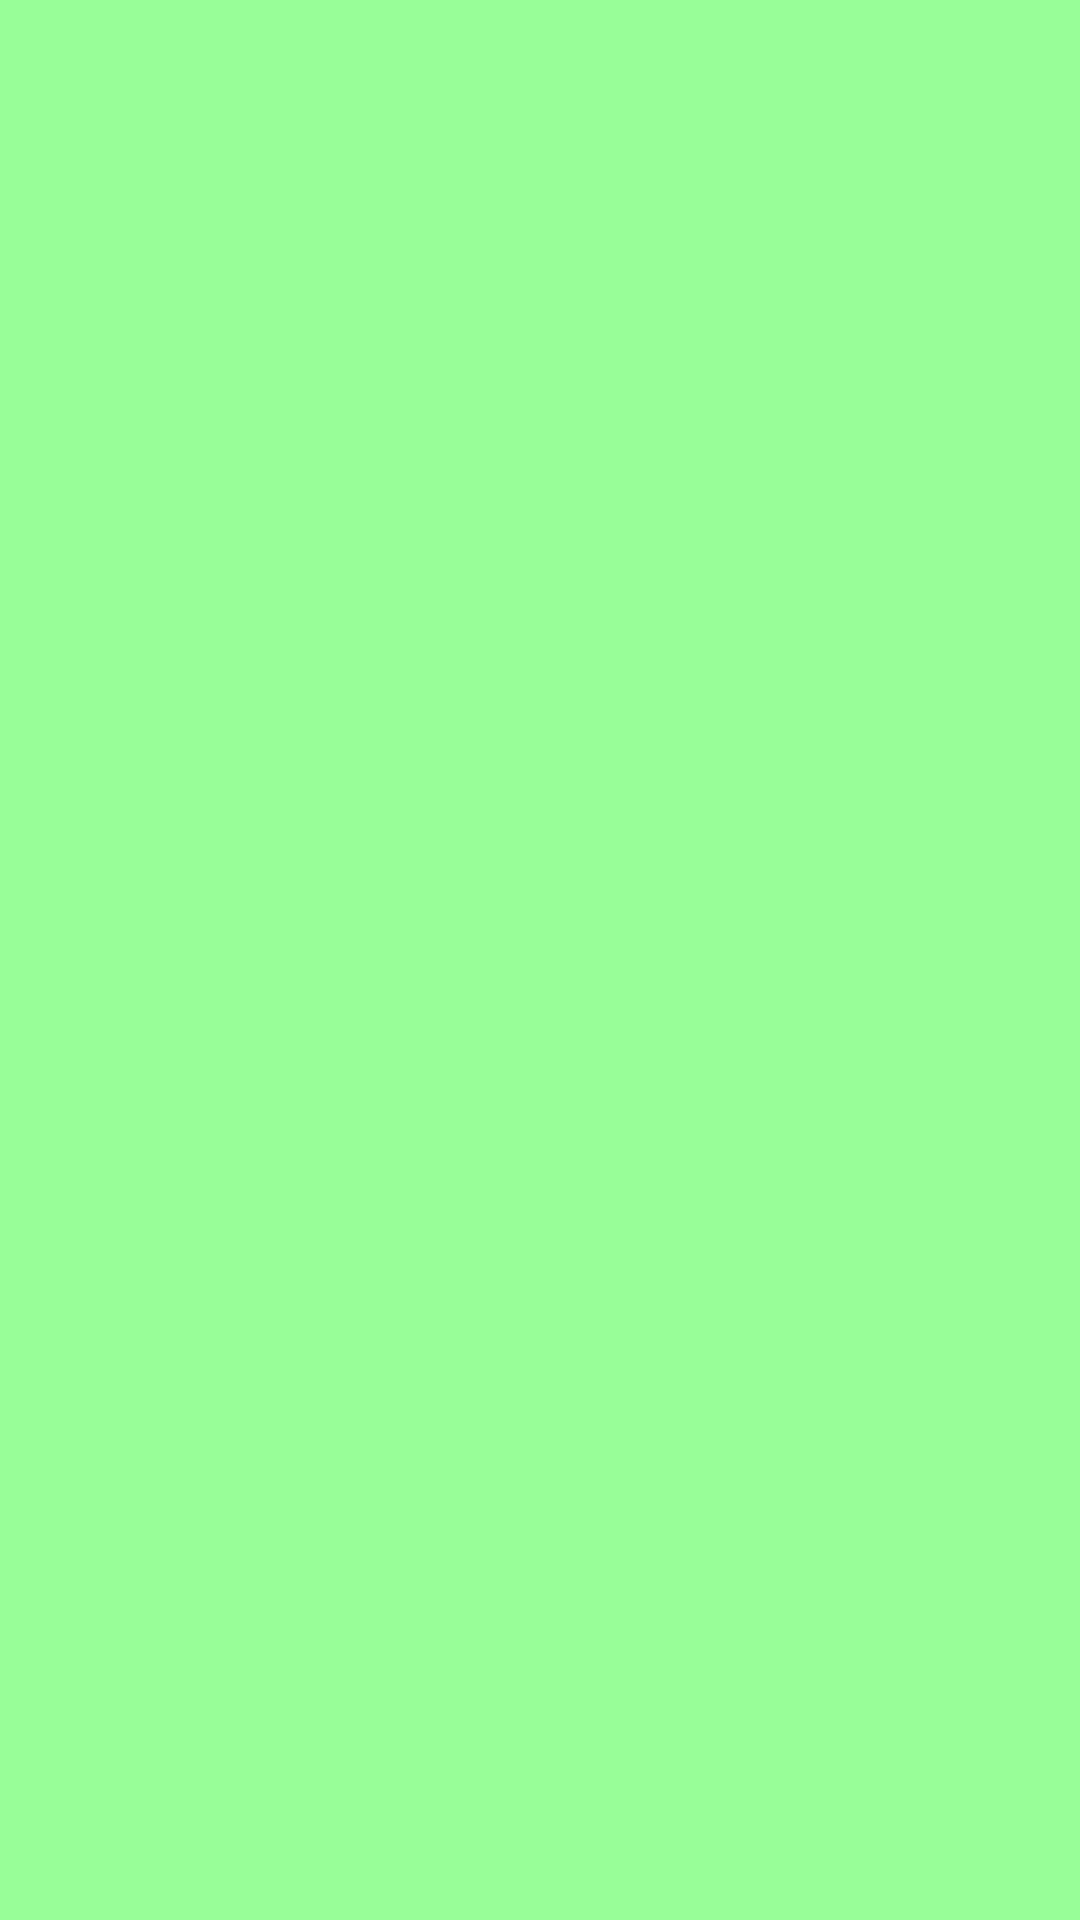 1080x1920 Mint Green Solid Color Background